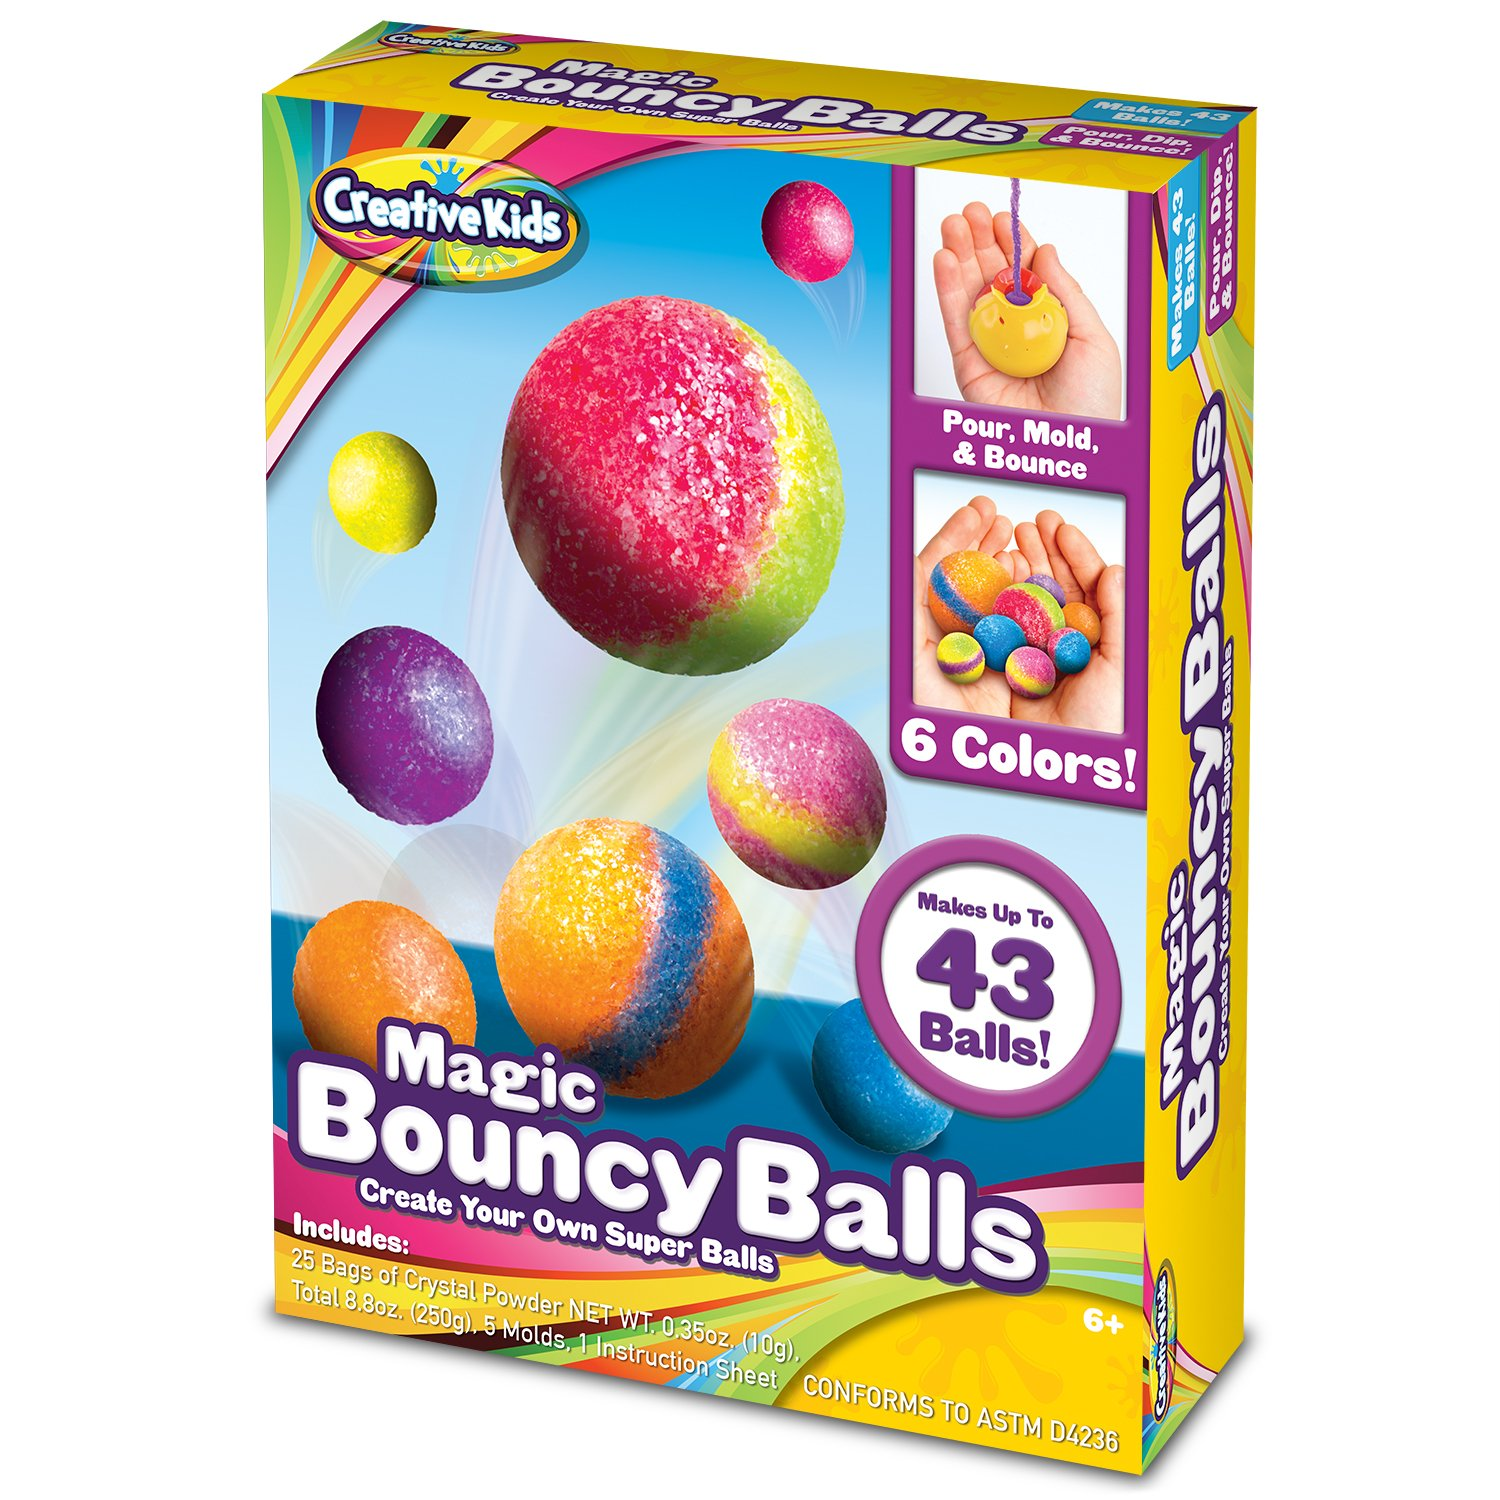 Glitter Make Your Own Bouncy Balls Illustrated Instructions and more DIY Super Bouncy Balls Kit Age 6-12 Molds Crystal Power Craft Kits for Kids w//Multi-colored and Glow in the Dark Powders